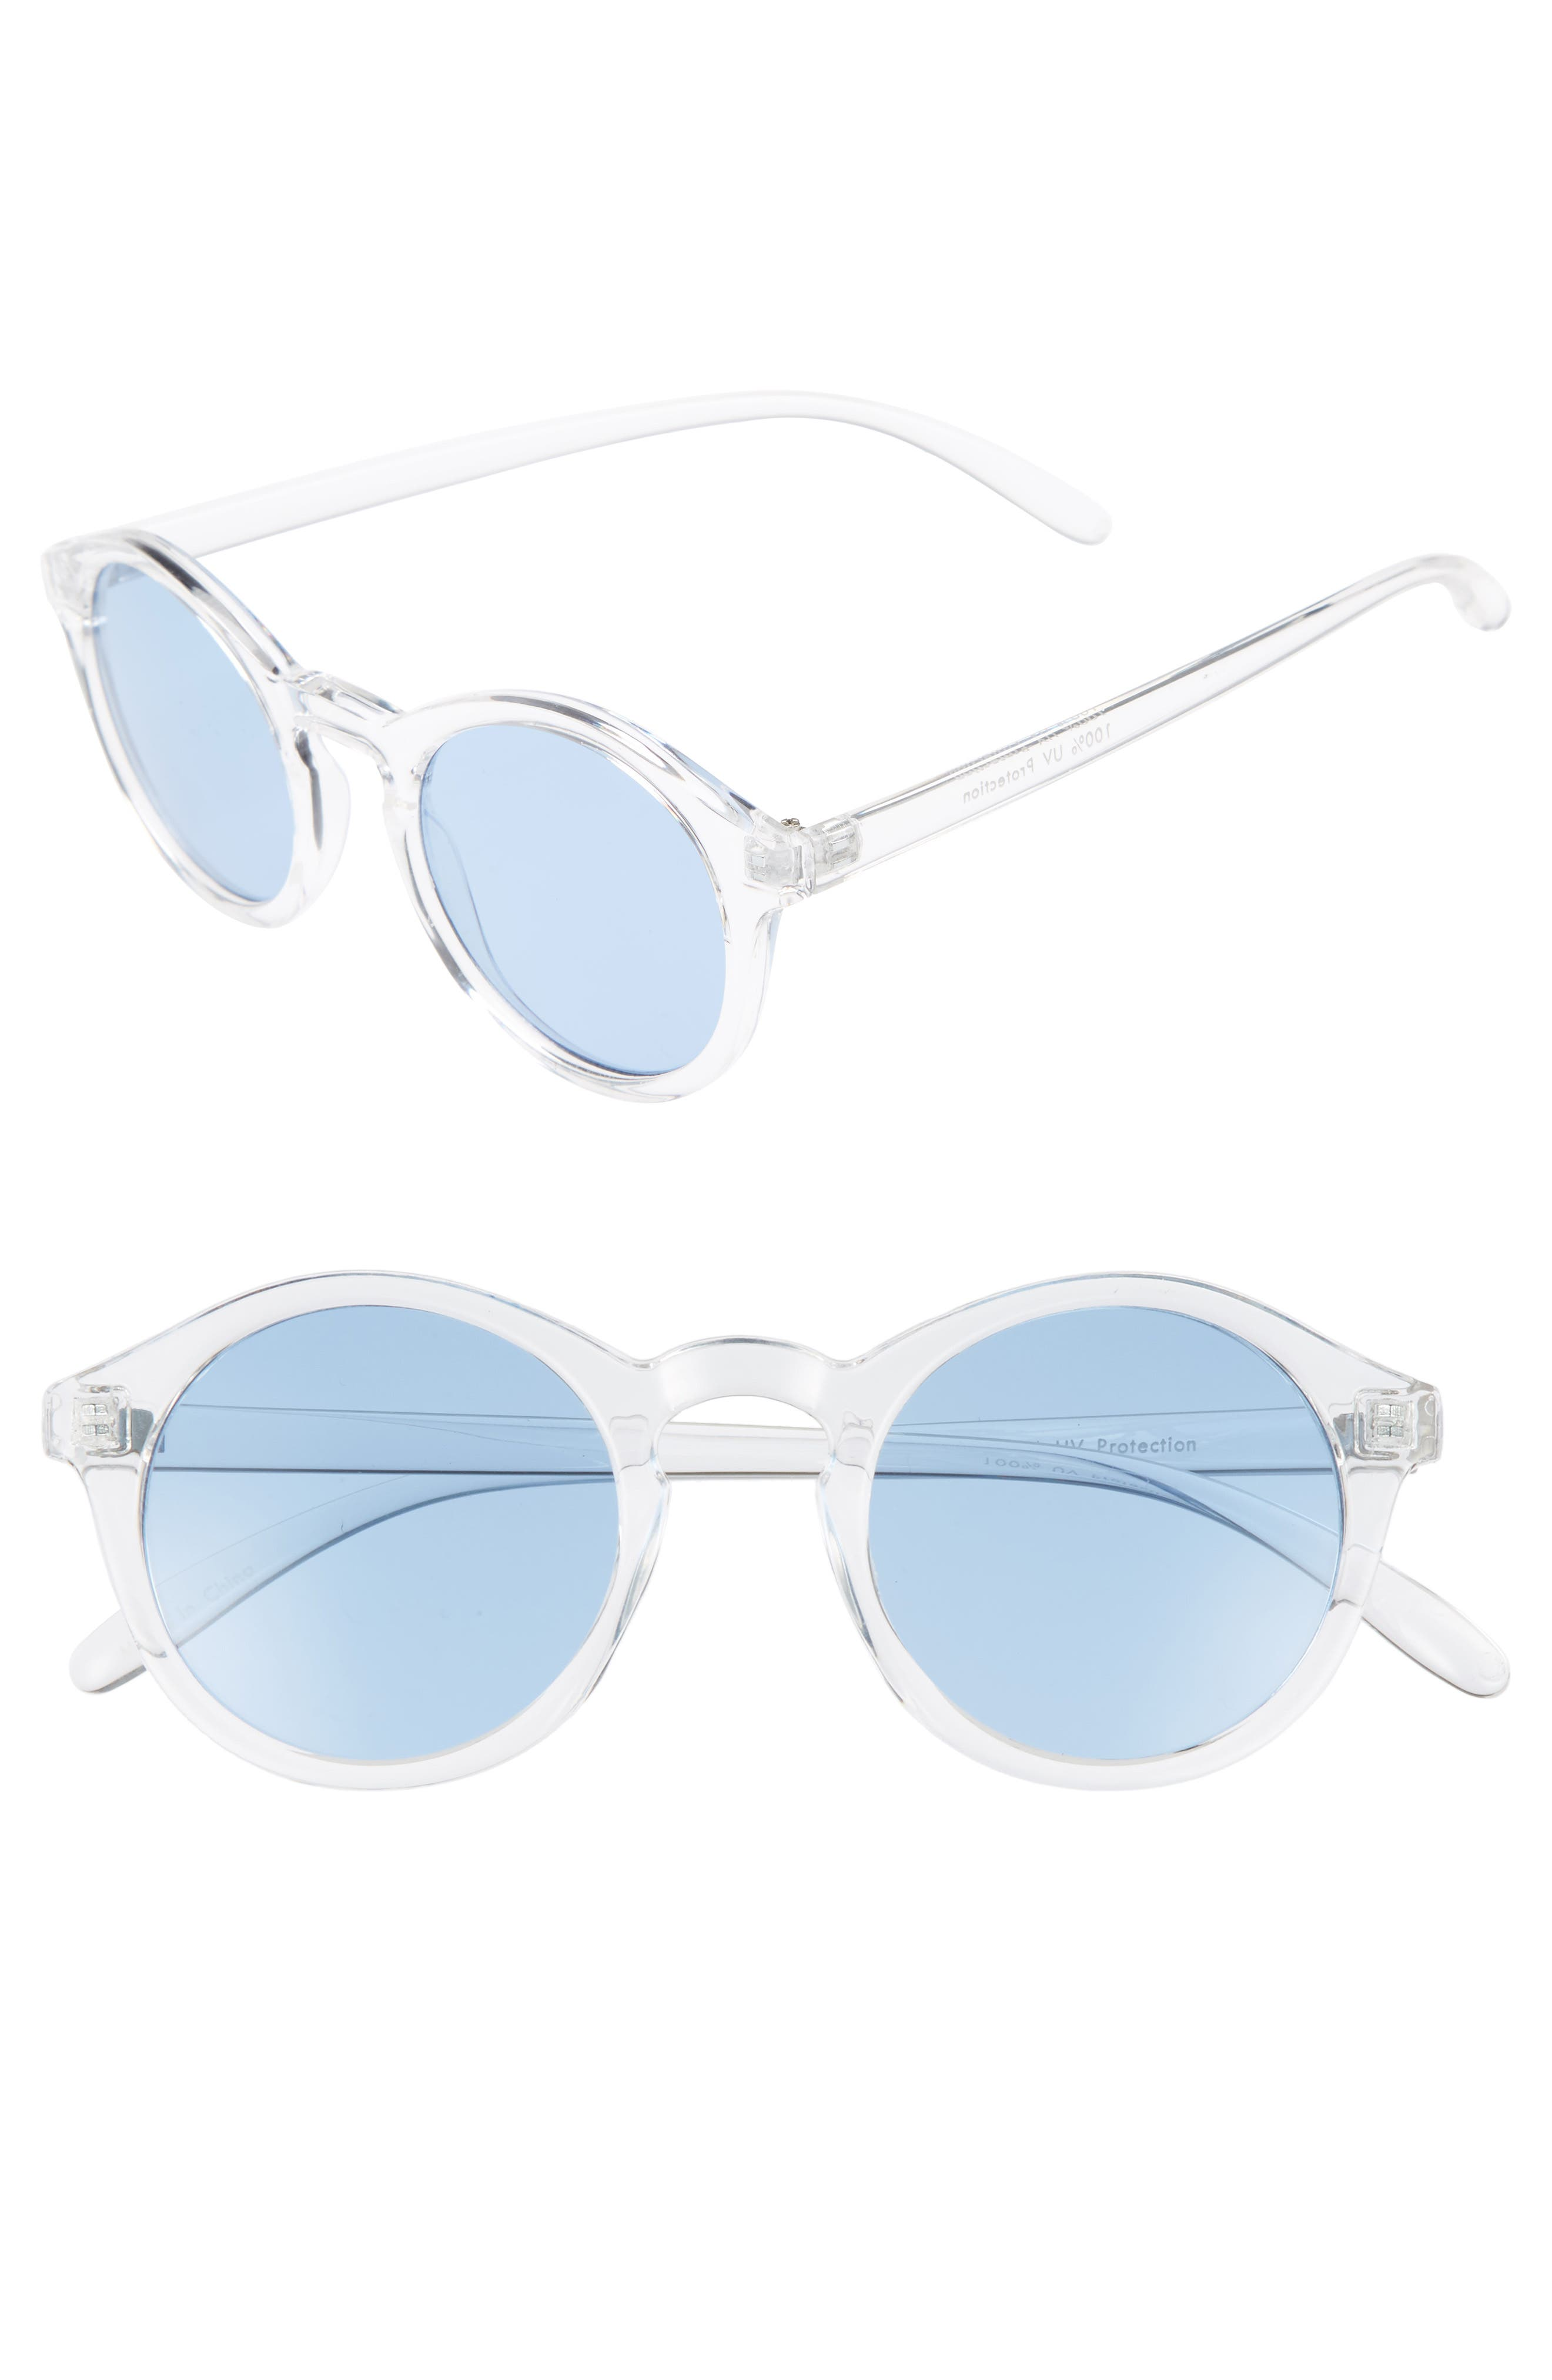 45mm Clear Plastic Small Round Sunglasses,                             Main thumbnail 1, color,                             100